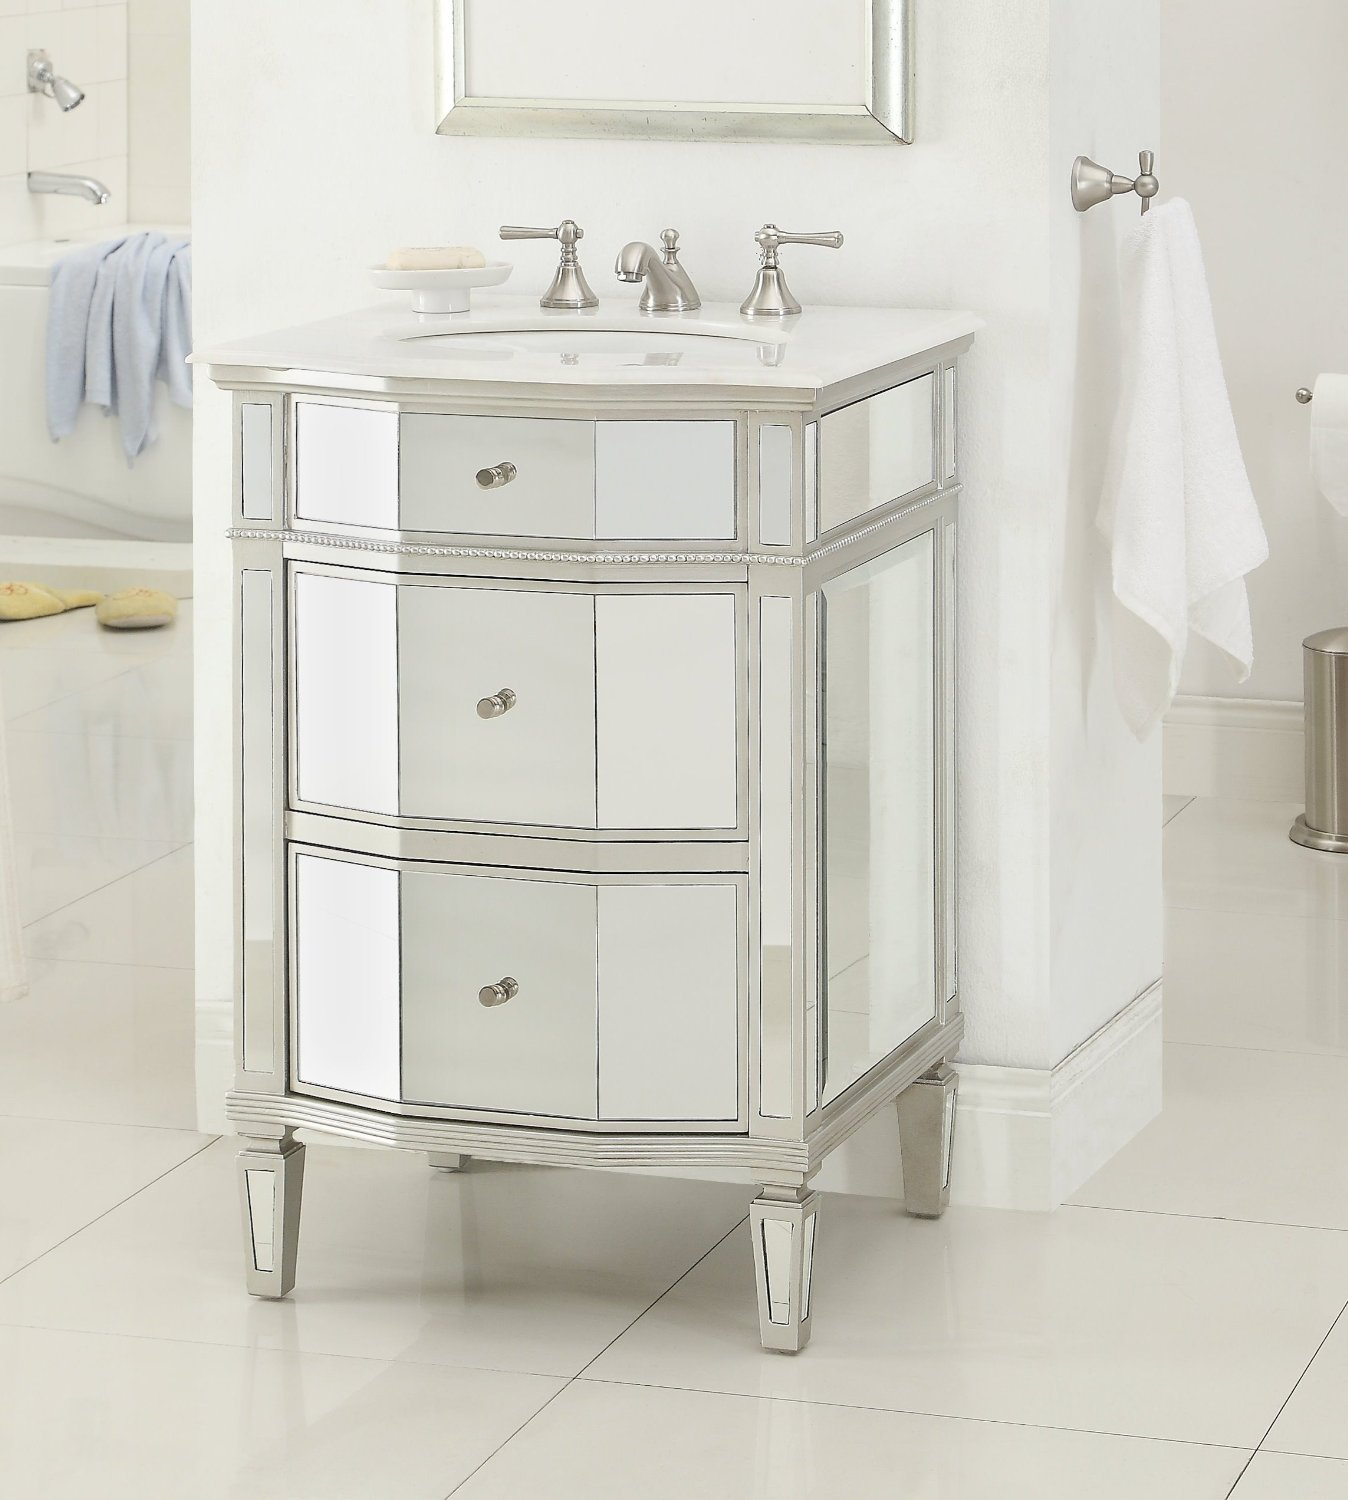 Simple The Master Bathroom Of My Soon To Be Built House Will Be Fairly Small But Im Always Wowed By The Dramatic Bathroom Photos Of Double Vanities That I See On Houzz My Kitchenbath Designer Has Specd A 54&quot Vanity That Is Flanked By A